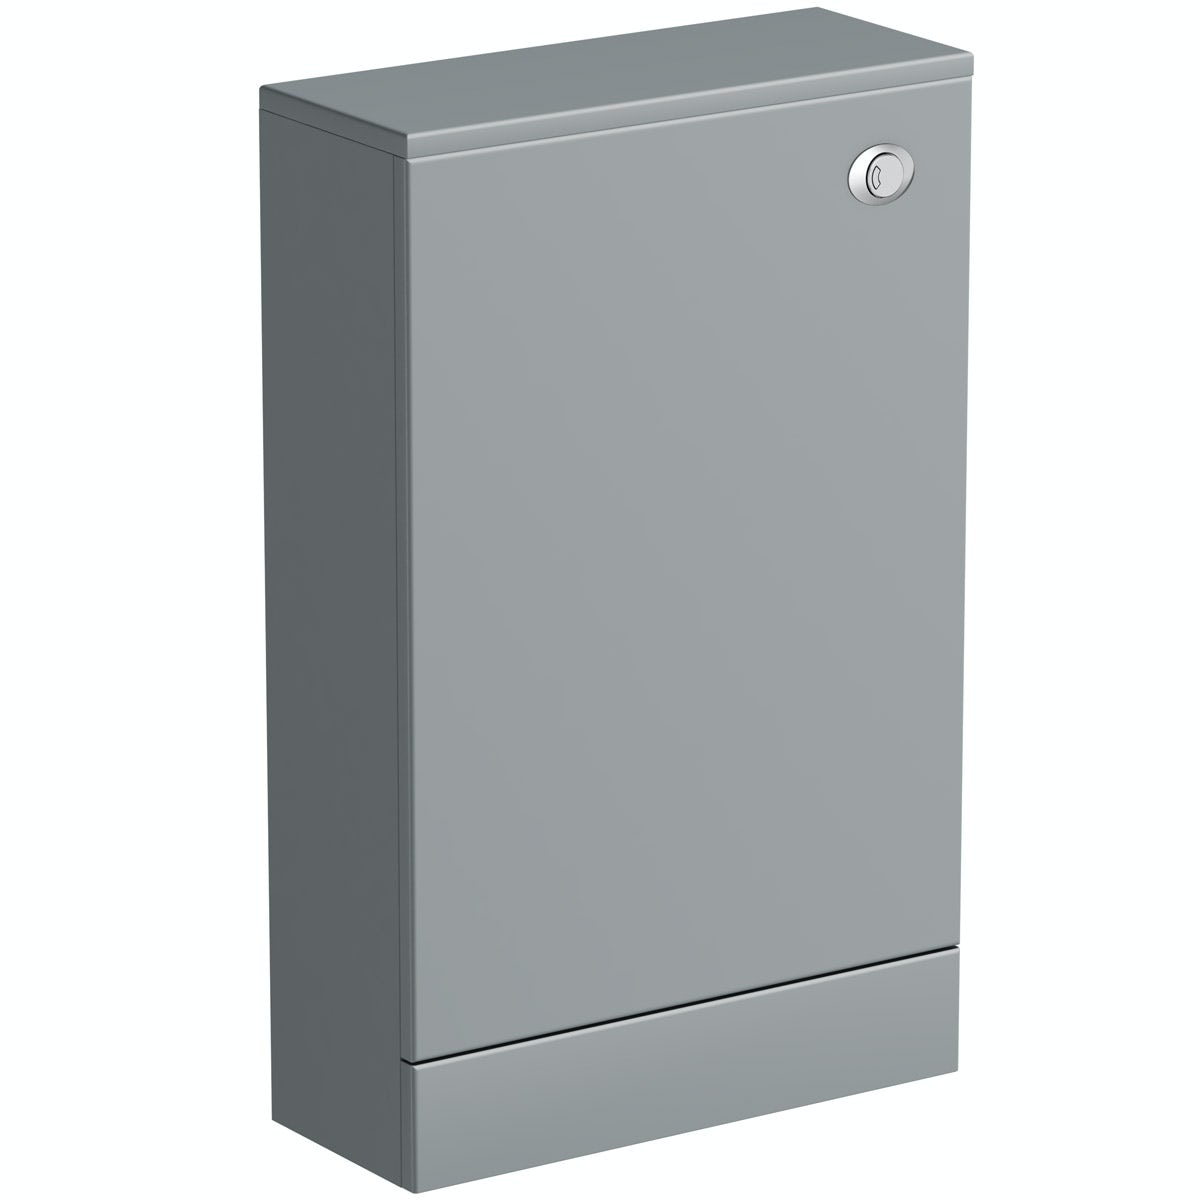 Orchard Derwent stone grey back to wall toilet unit